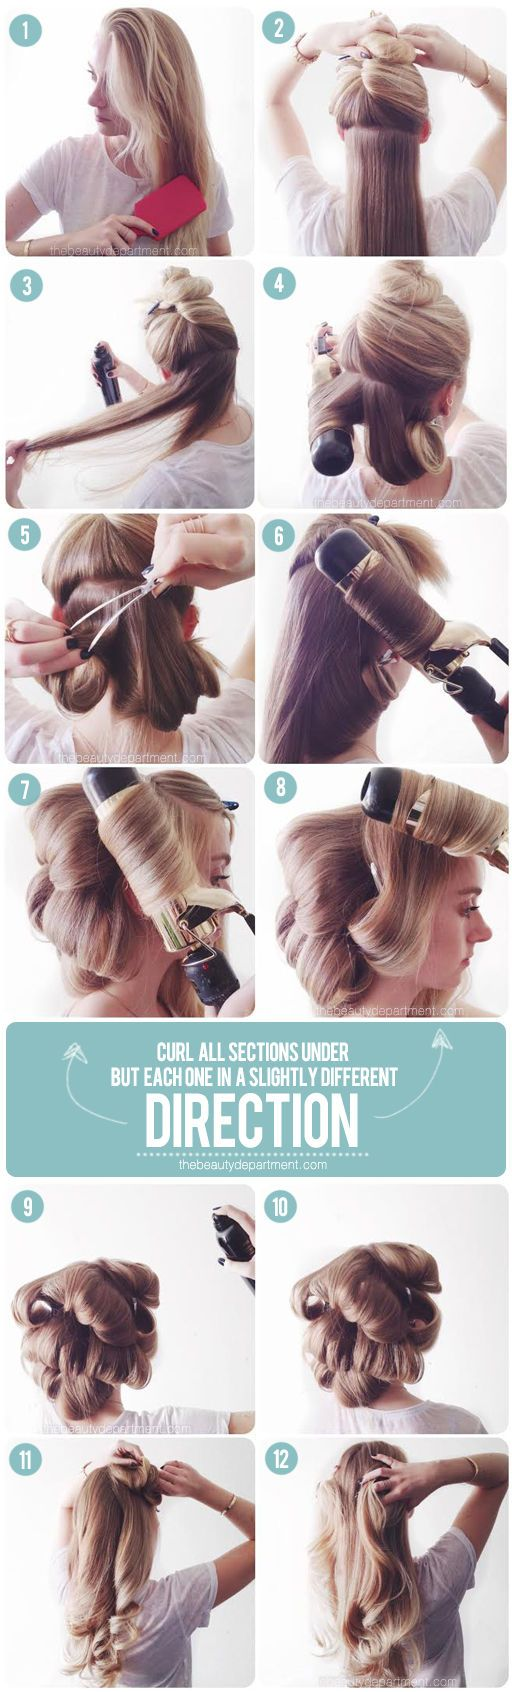 best hair and makeup images on pinterest hairstyle ideas easy